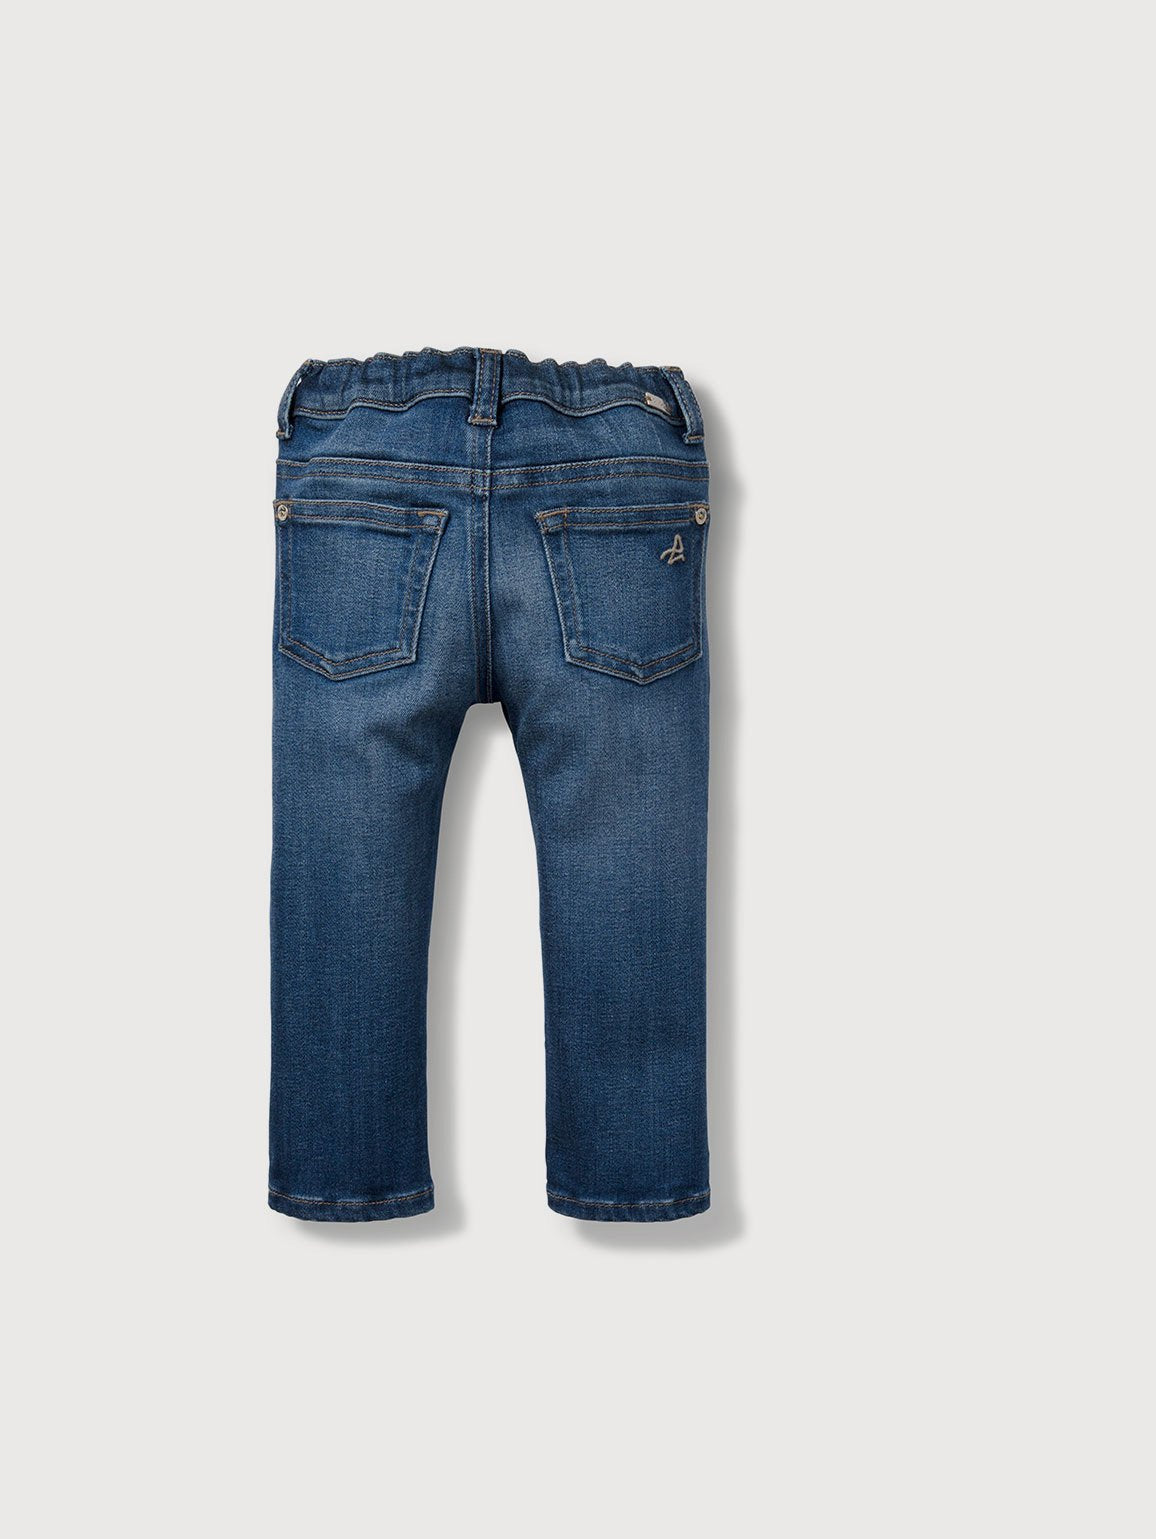 Infant Girls - Infant Blue Denim - Sophie Infant Slim Parula - DL1961